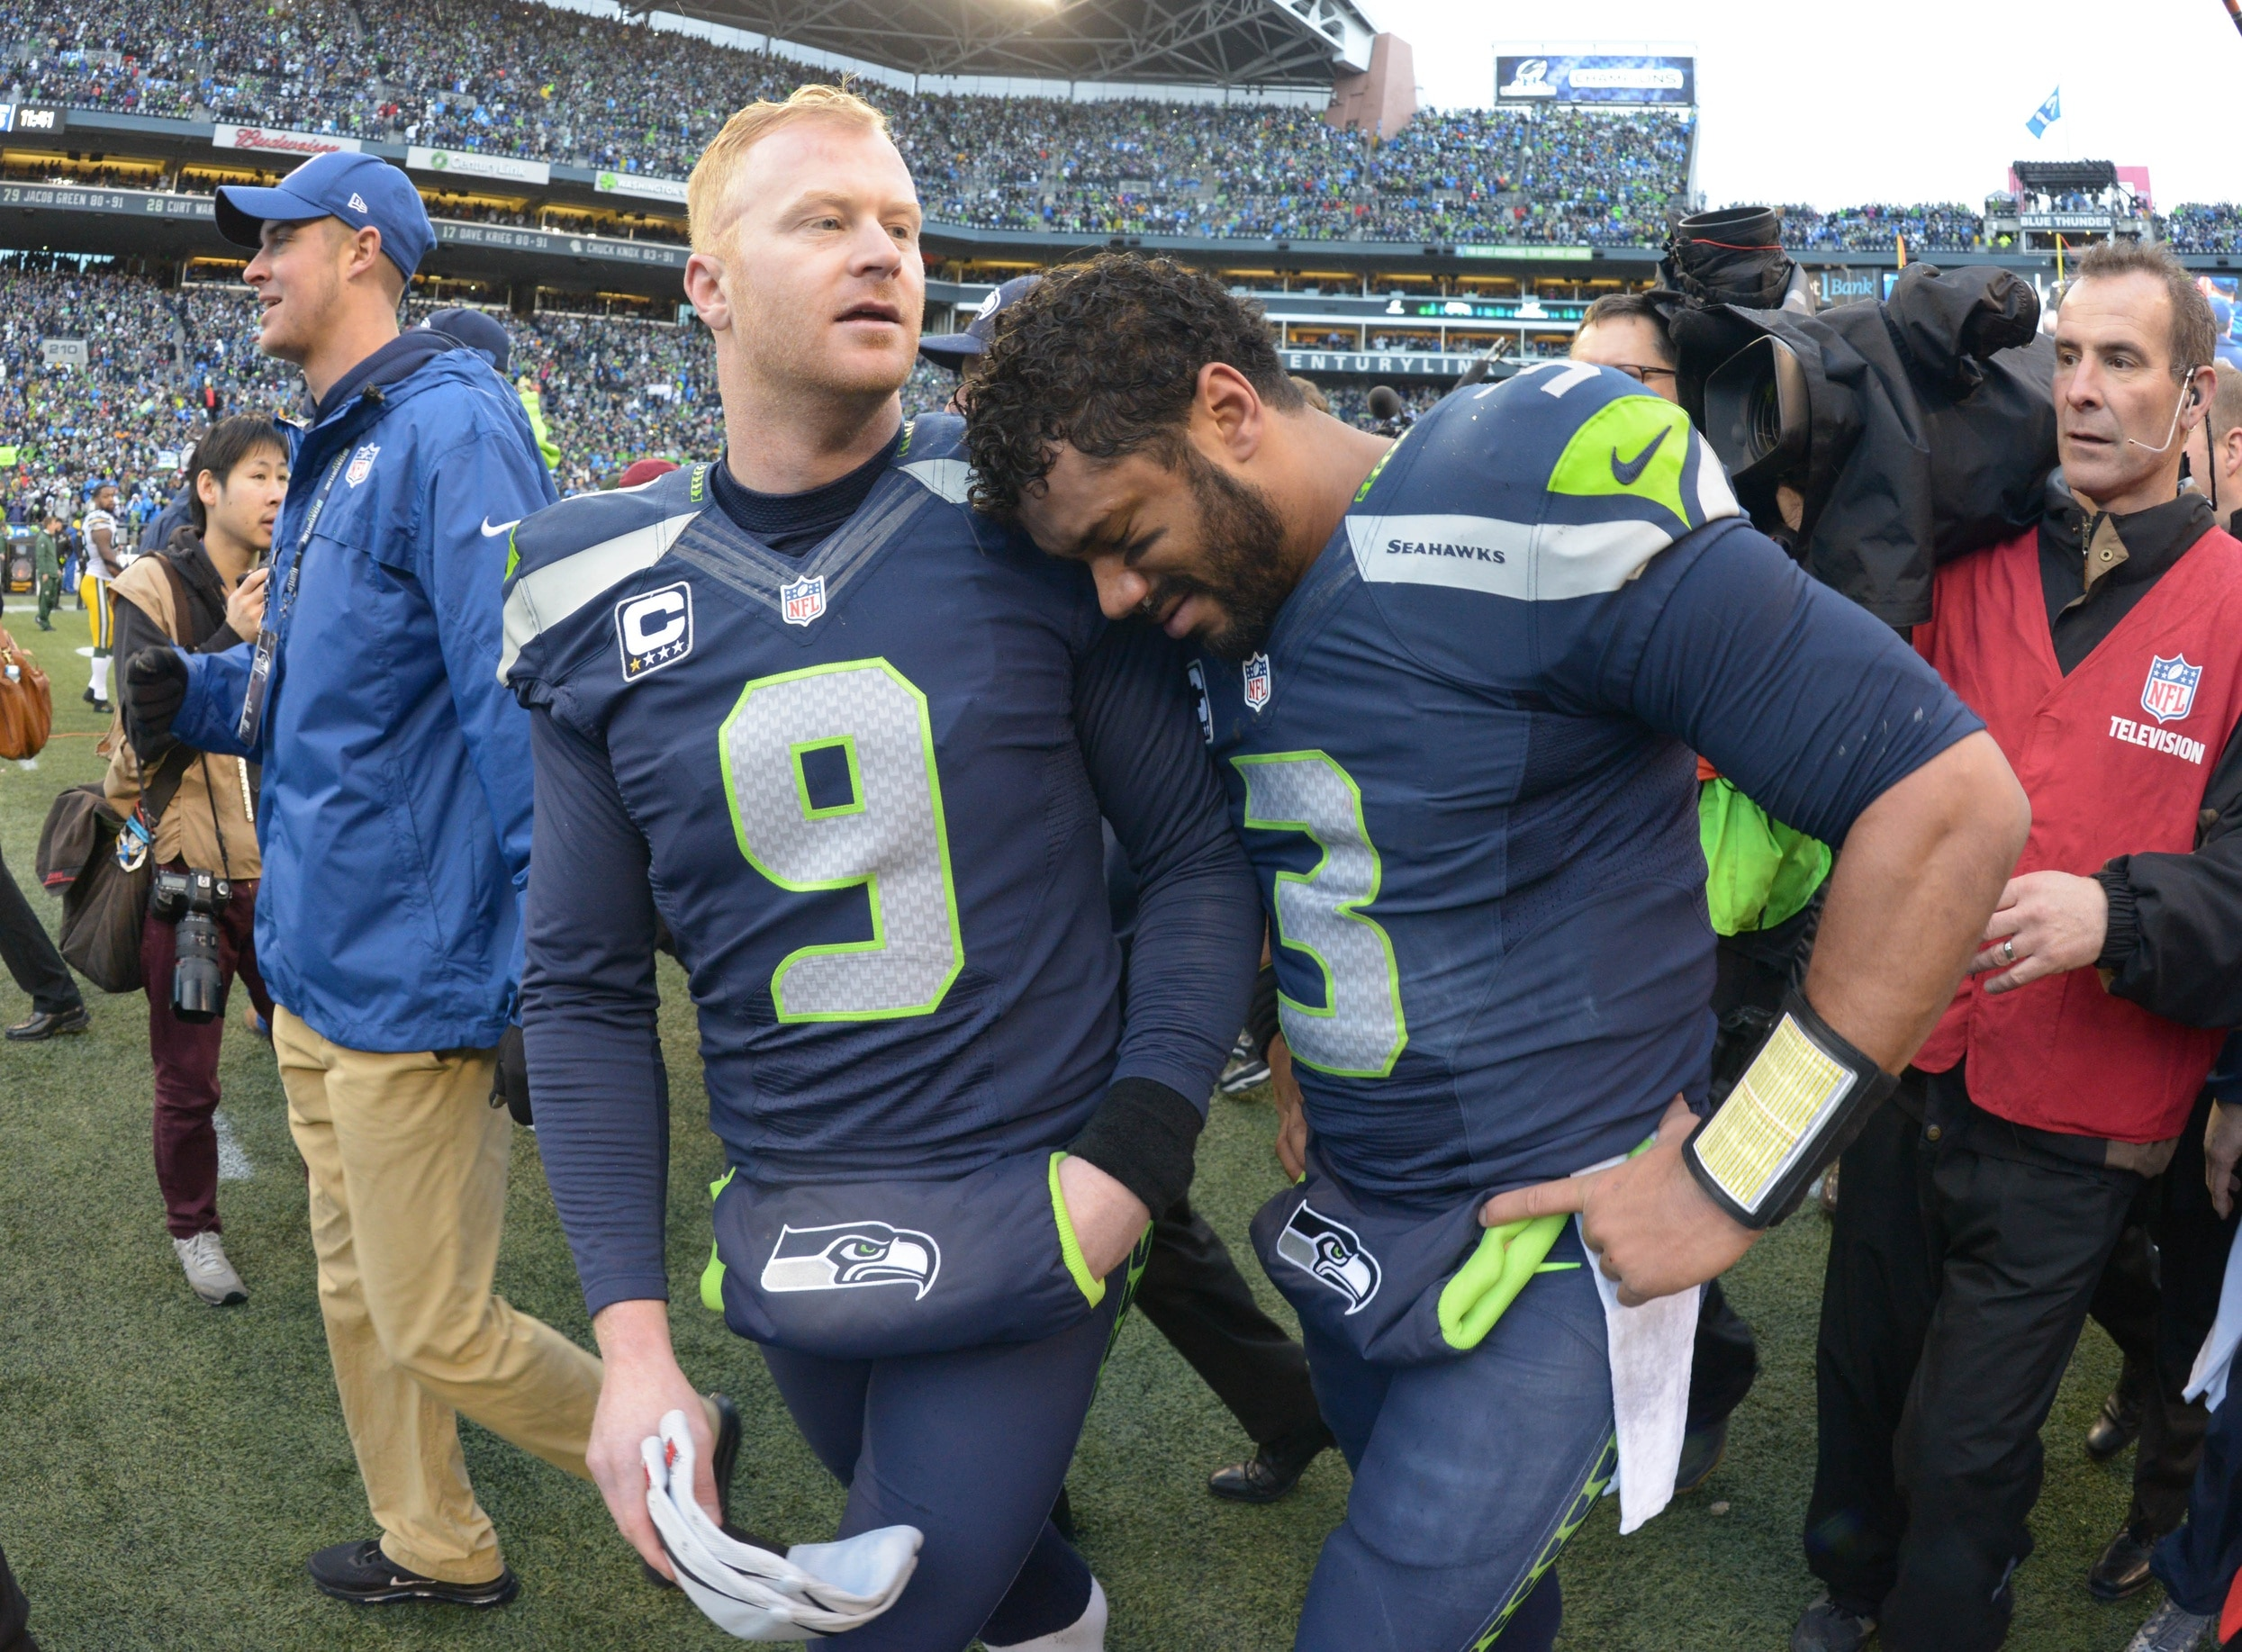 Jan 18, 2015; Seattle, WA, USA; Seattle Seahawks punter Jon Ryan (9) and Russell Wilson (3) celebrate following the overtime victory over the Green Bay Packers in the NFC Championship Game at CenturyLink Field. The Seahawks defeated the Packers 28-22 in overtime. Mandatory Credit: Kirby Lee-USA TODAY Sports